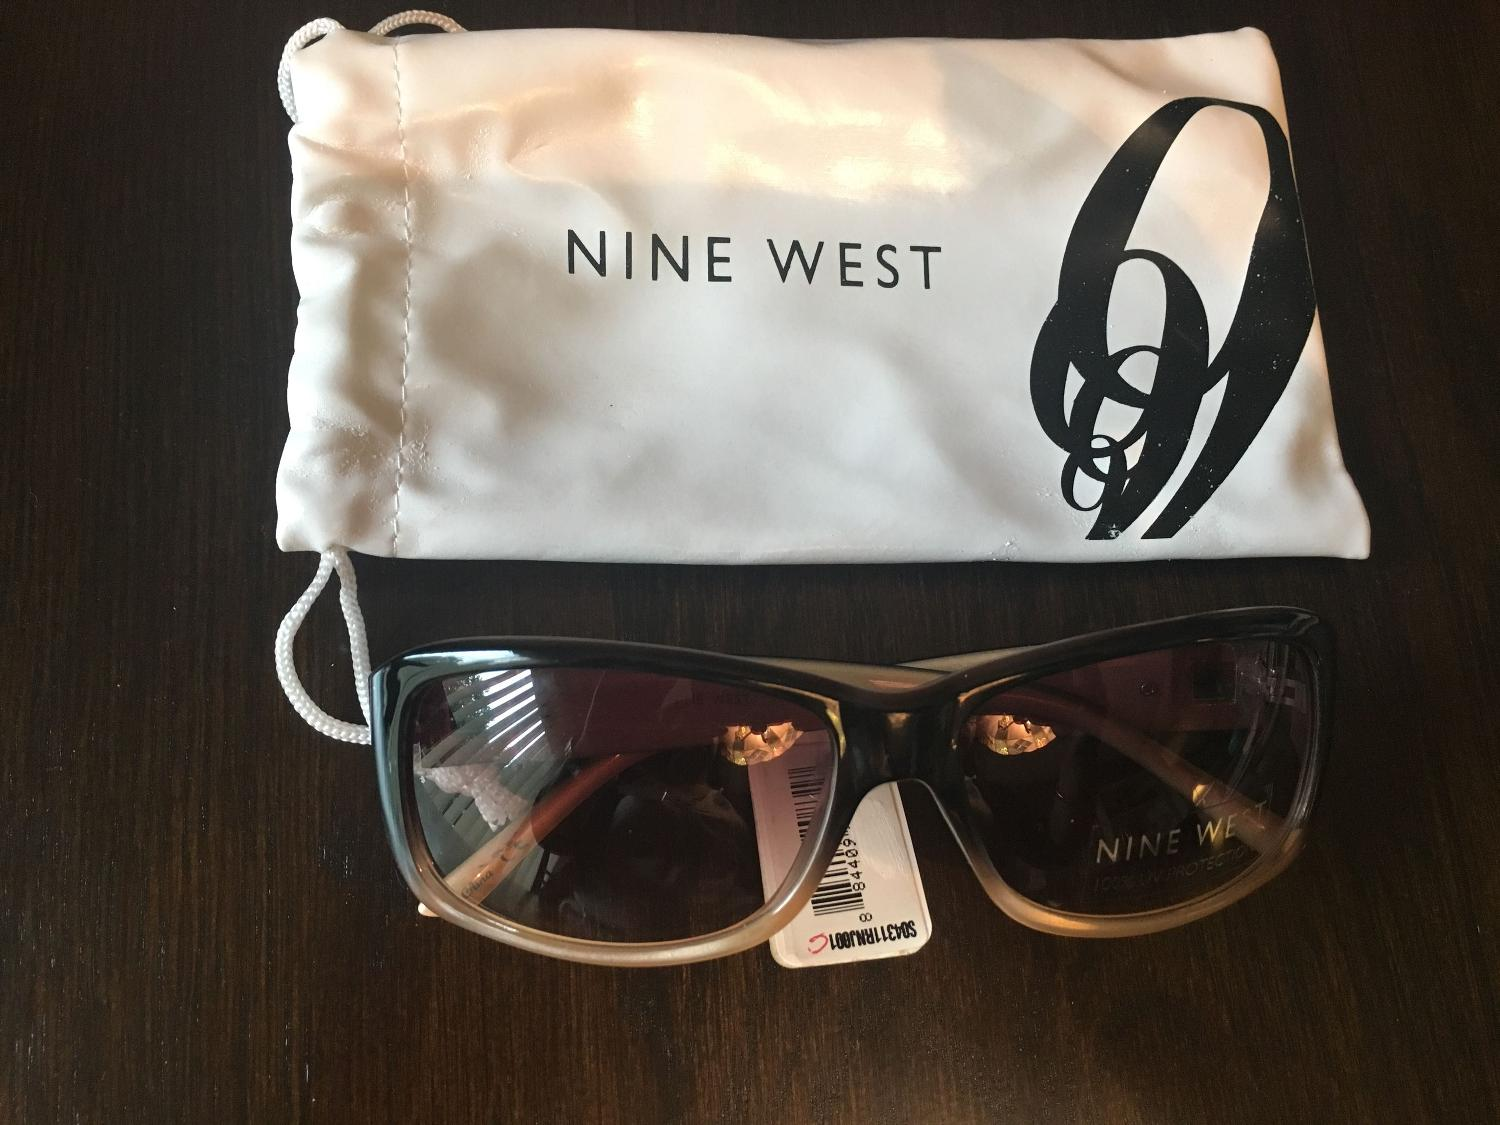 e0b948bed4 Best Bnwt Nine West Sunglasses With Pouch for sale in Oshawa ...